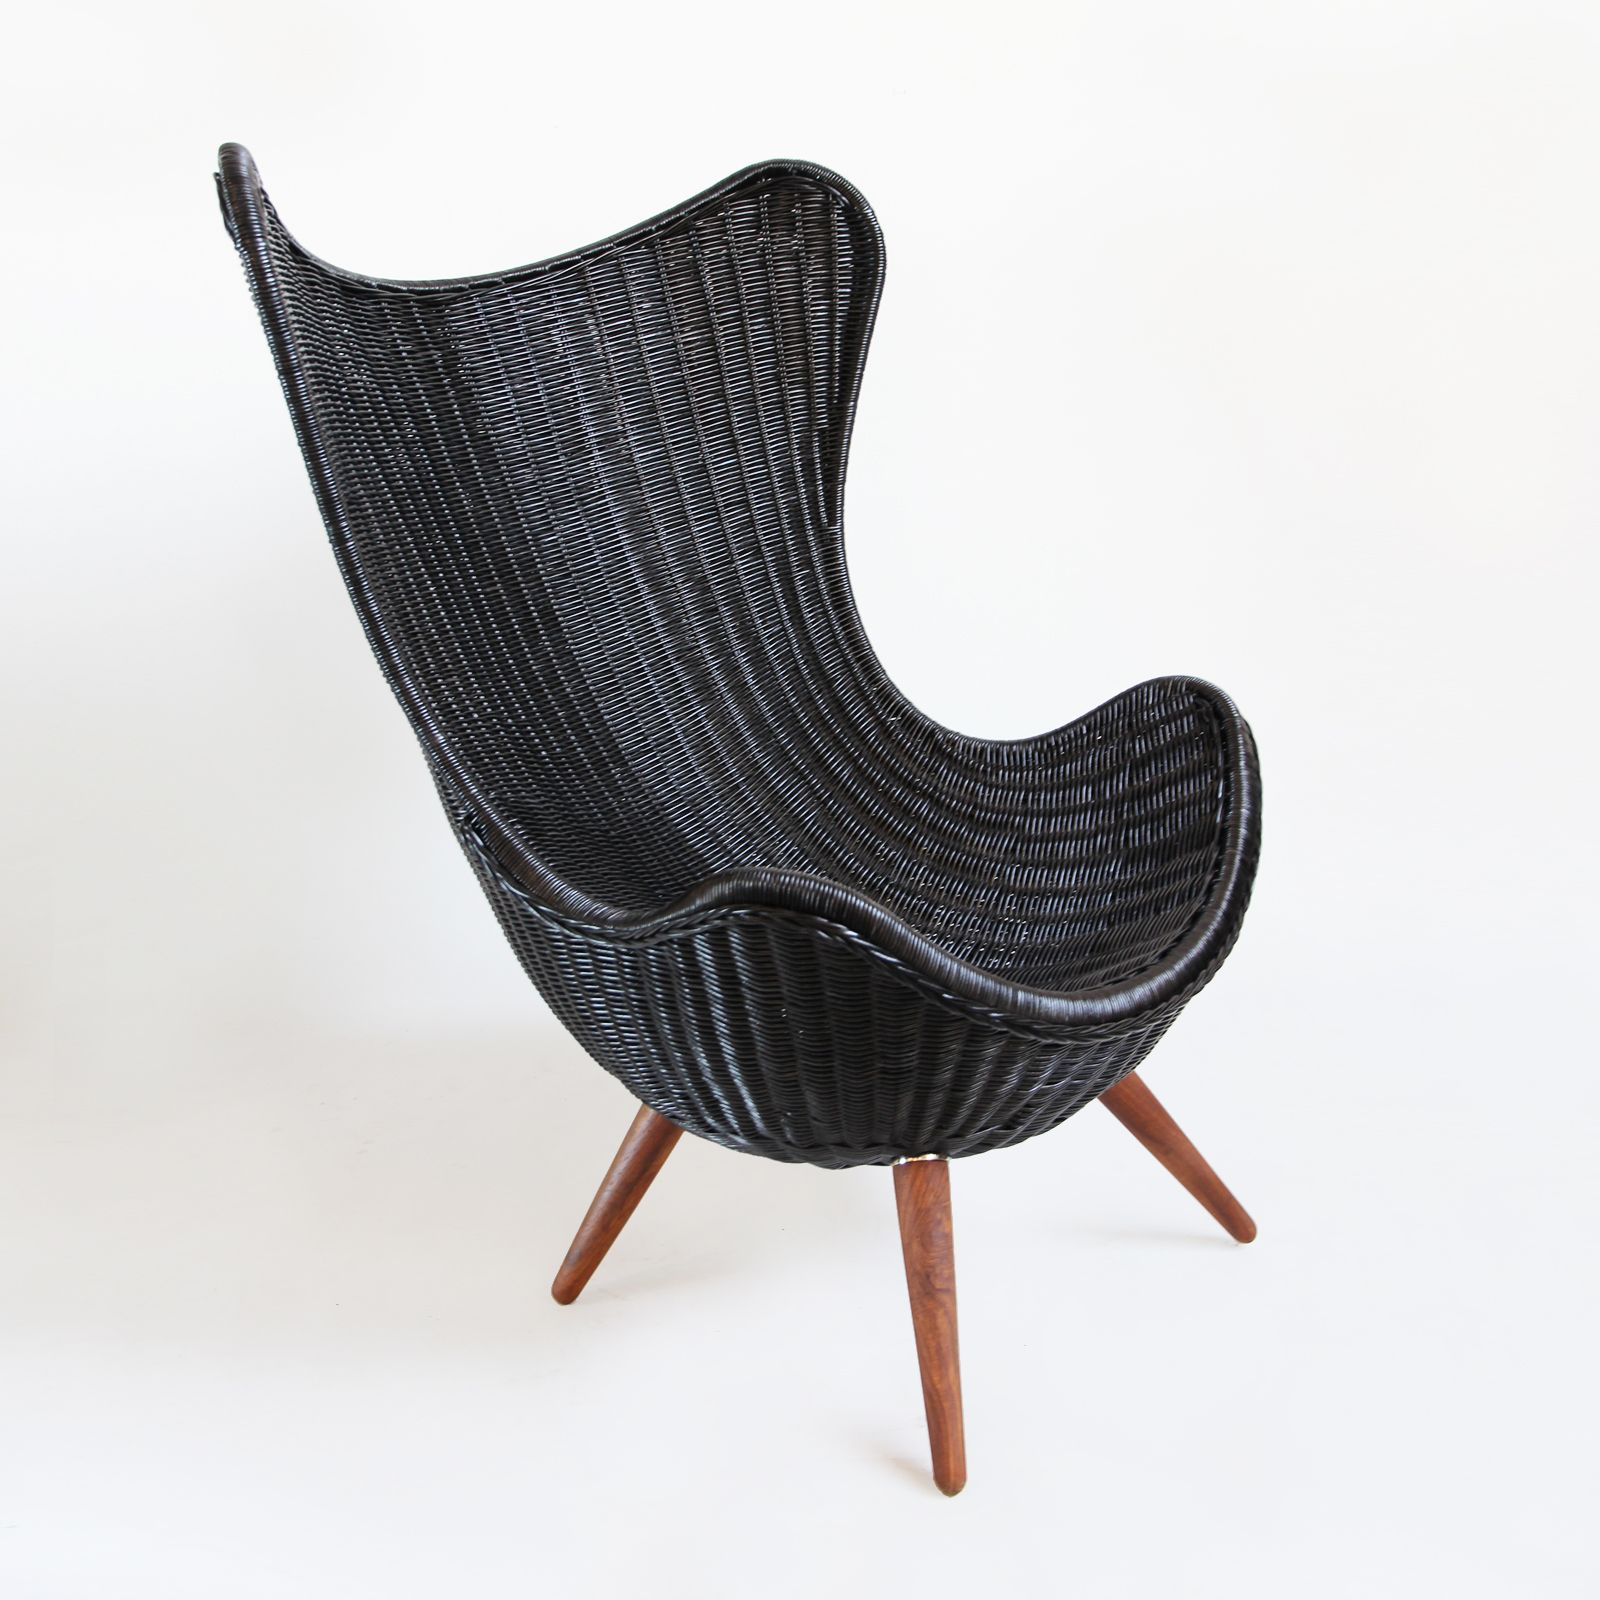 New at MIX! Black stained modern wicker egg chair with